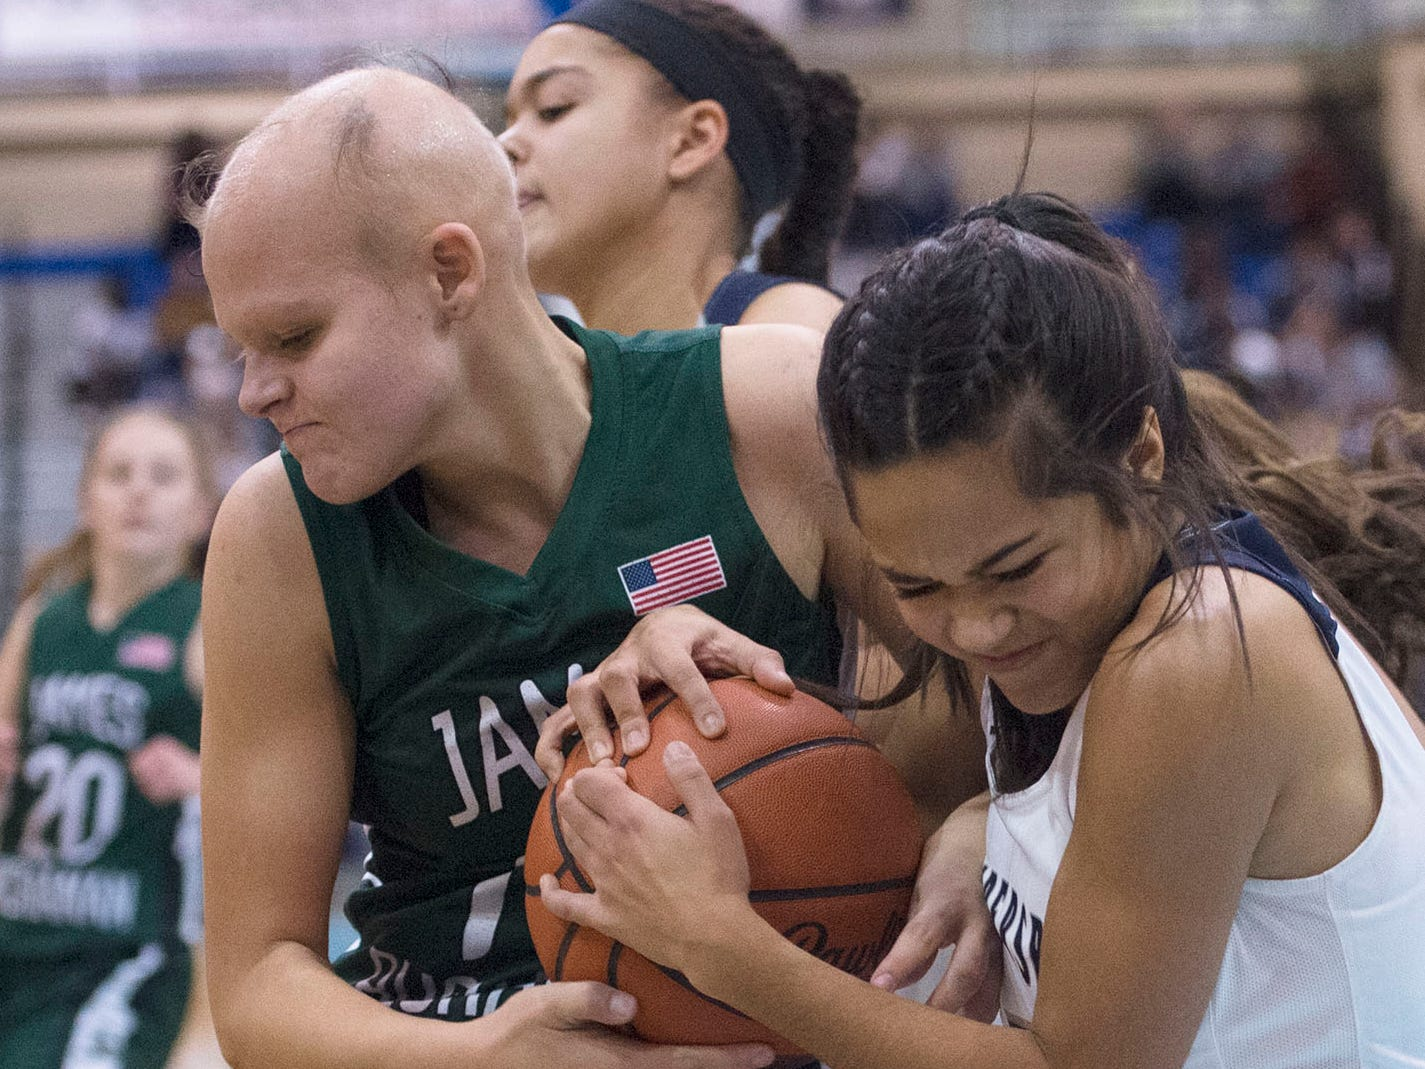 Erin Patillo, right, of Chambersburg  fights for the ball against James Buchanan's Cass Martin. Chambersburg played James Buchanan girls during the Franklin County Tip-Off Tournament, Friday, Dec. 7, 2018.